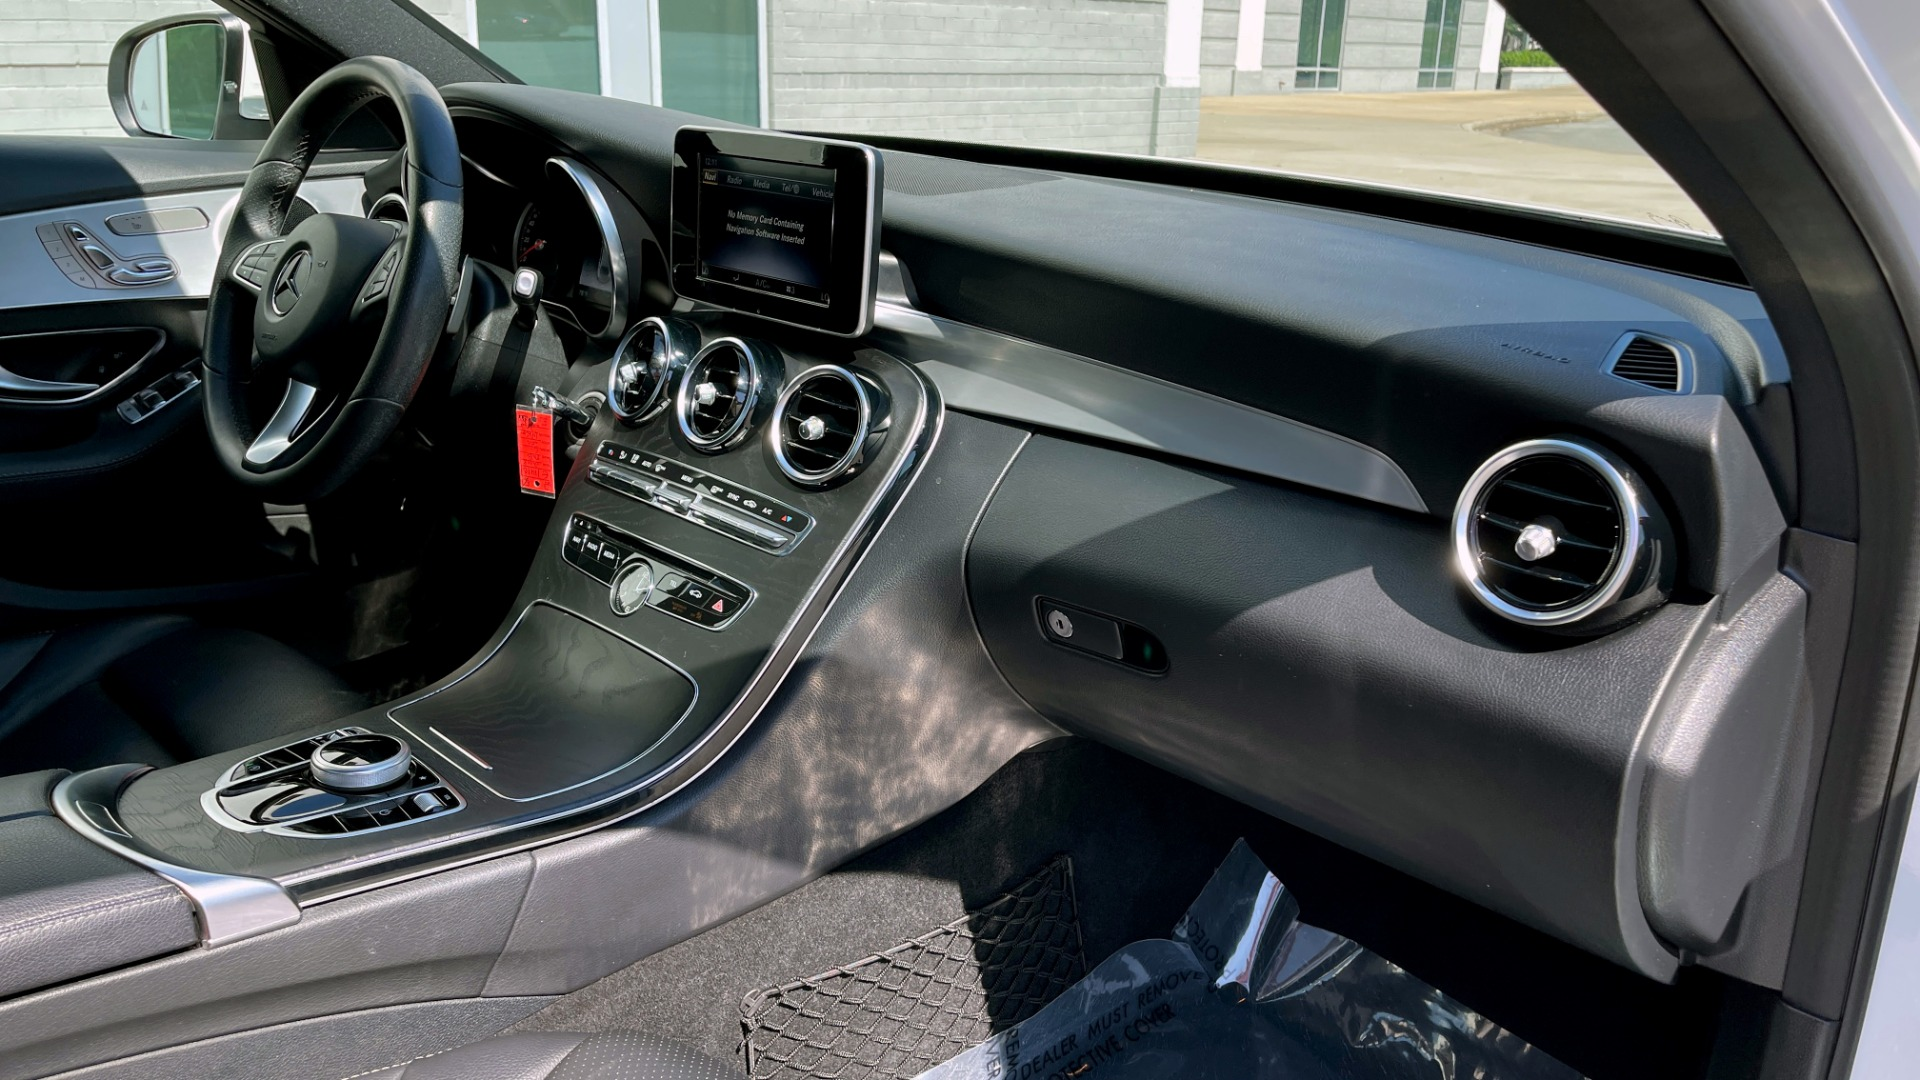 Used 2018 Mercedes-Benz C-CLASS C 300 PREMIUM / APPLE CARPLAY / KEYLESS-GO / SUNROOF / REARVIEW for sale $32,995 at Formula Imports in Charlotte NC 28227 52